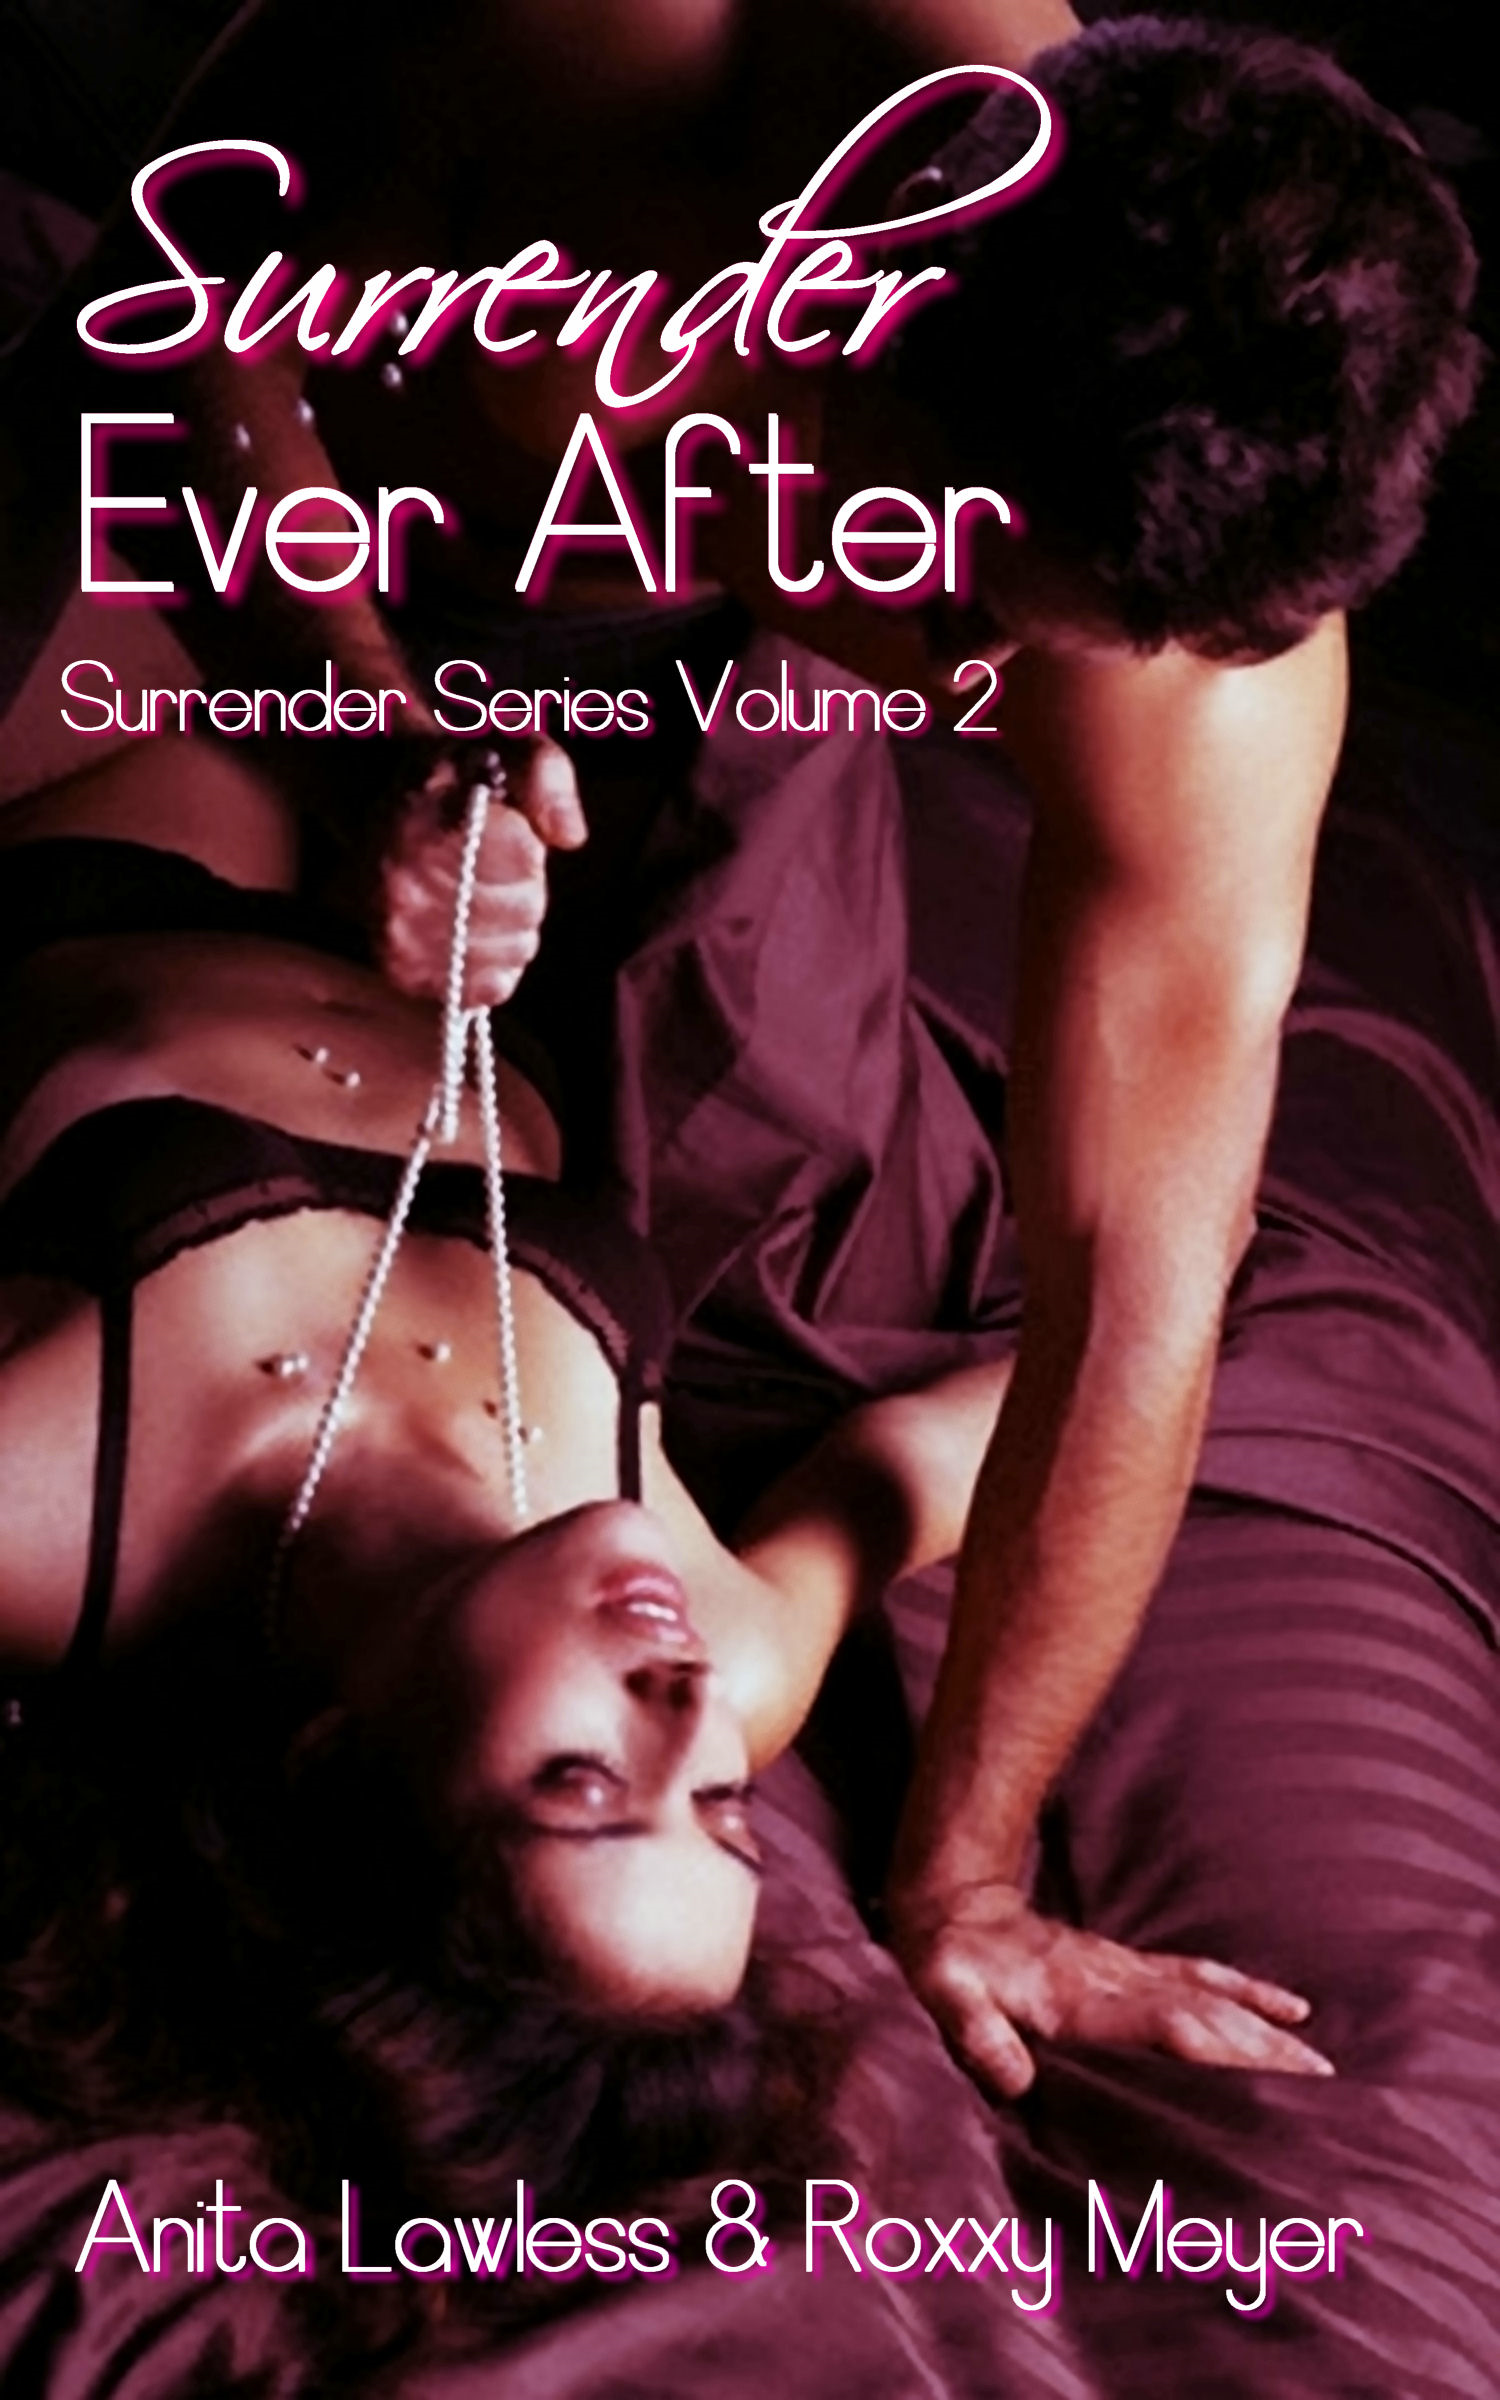 Surrender Ever After (Surrender Series Volume 2. BDSM Romance with British Dom. Includes Surrender To His Proposal, Surrender To His Wants, Surrender To His Lust, Surrender To His Love, and Surrender Ever After.)